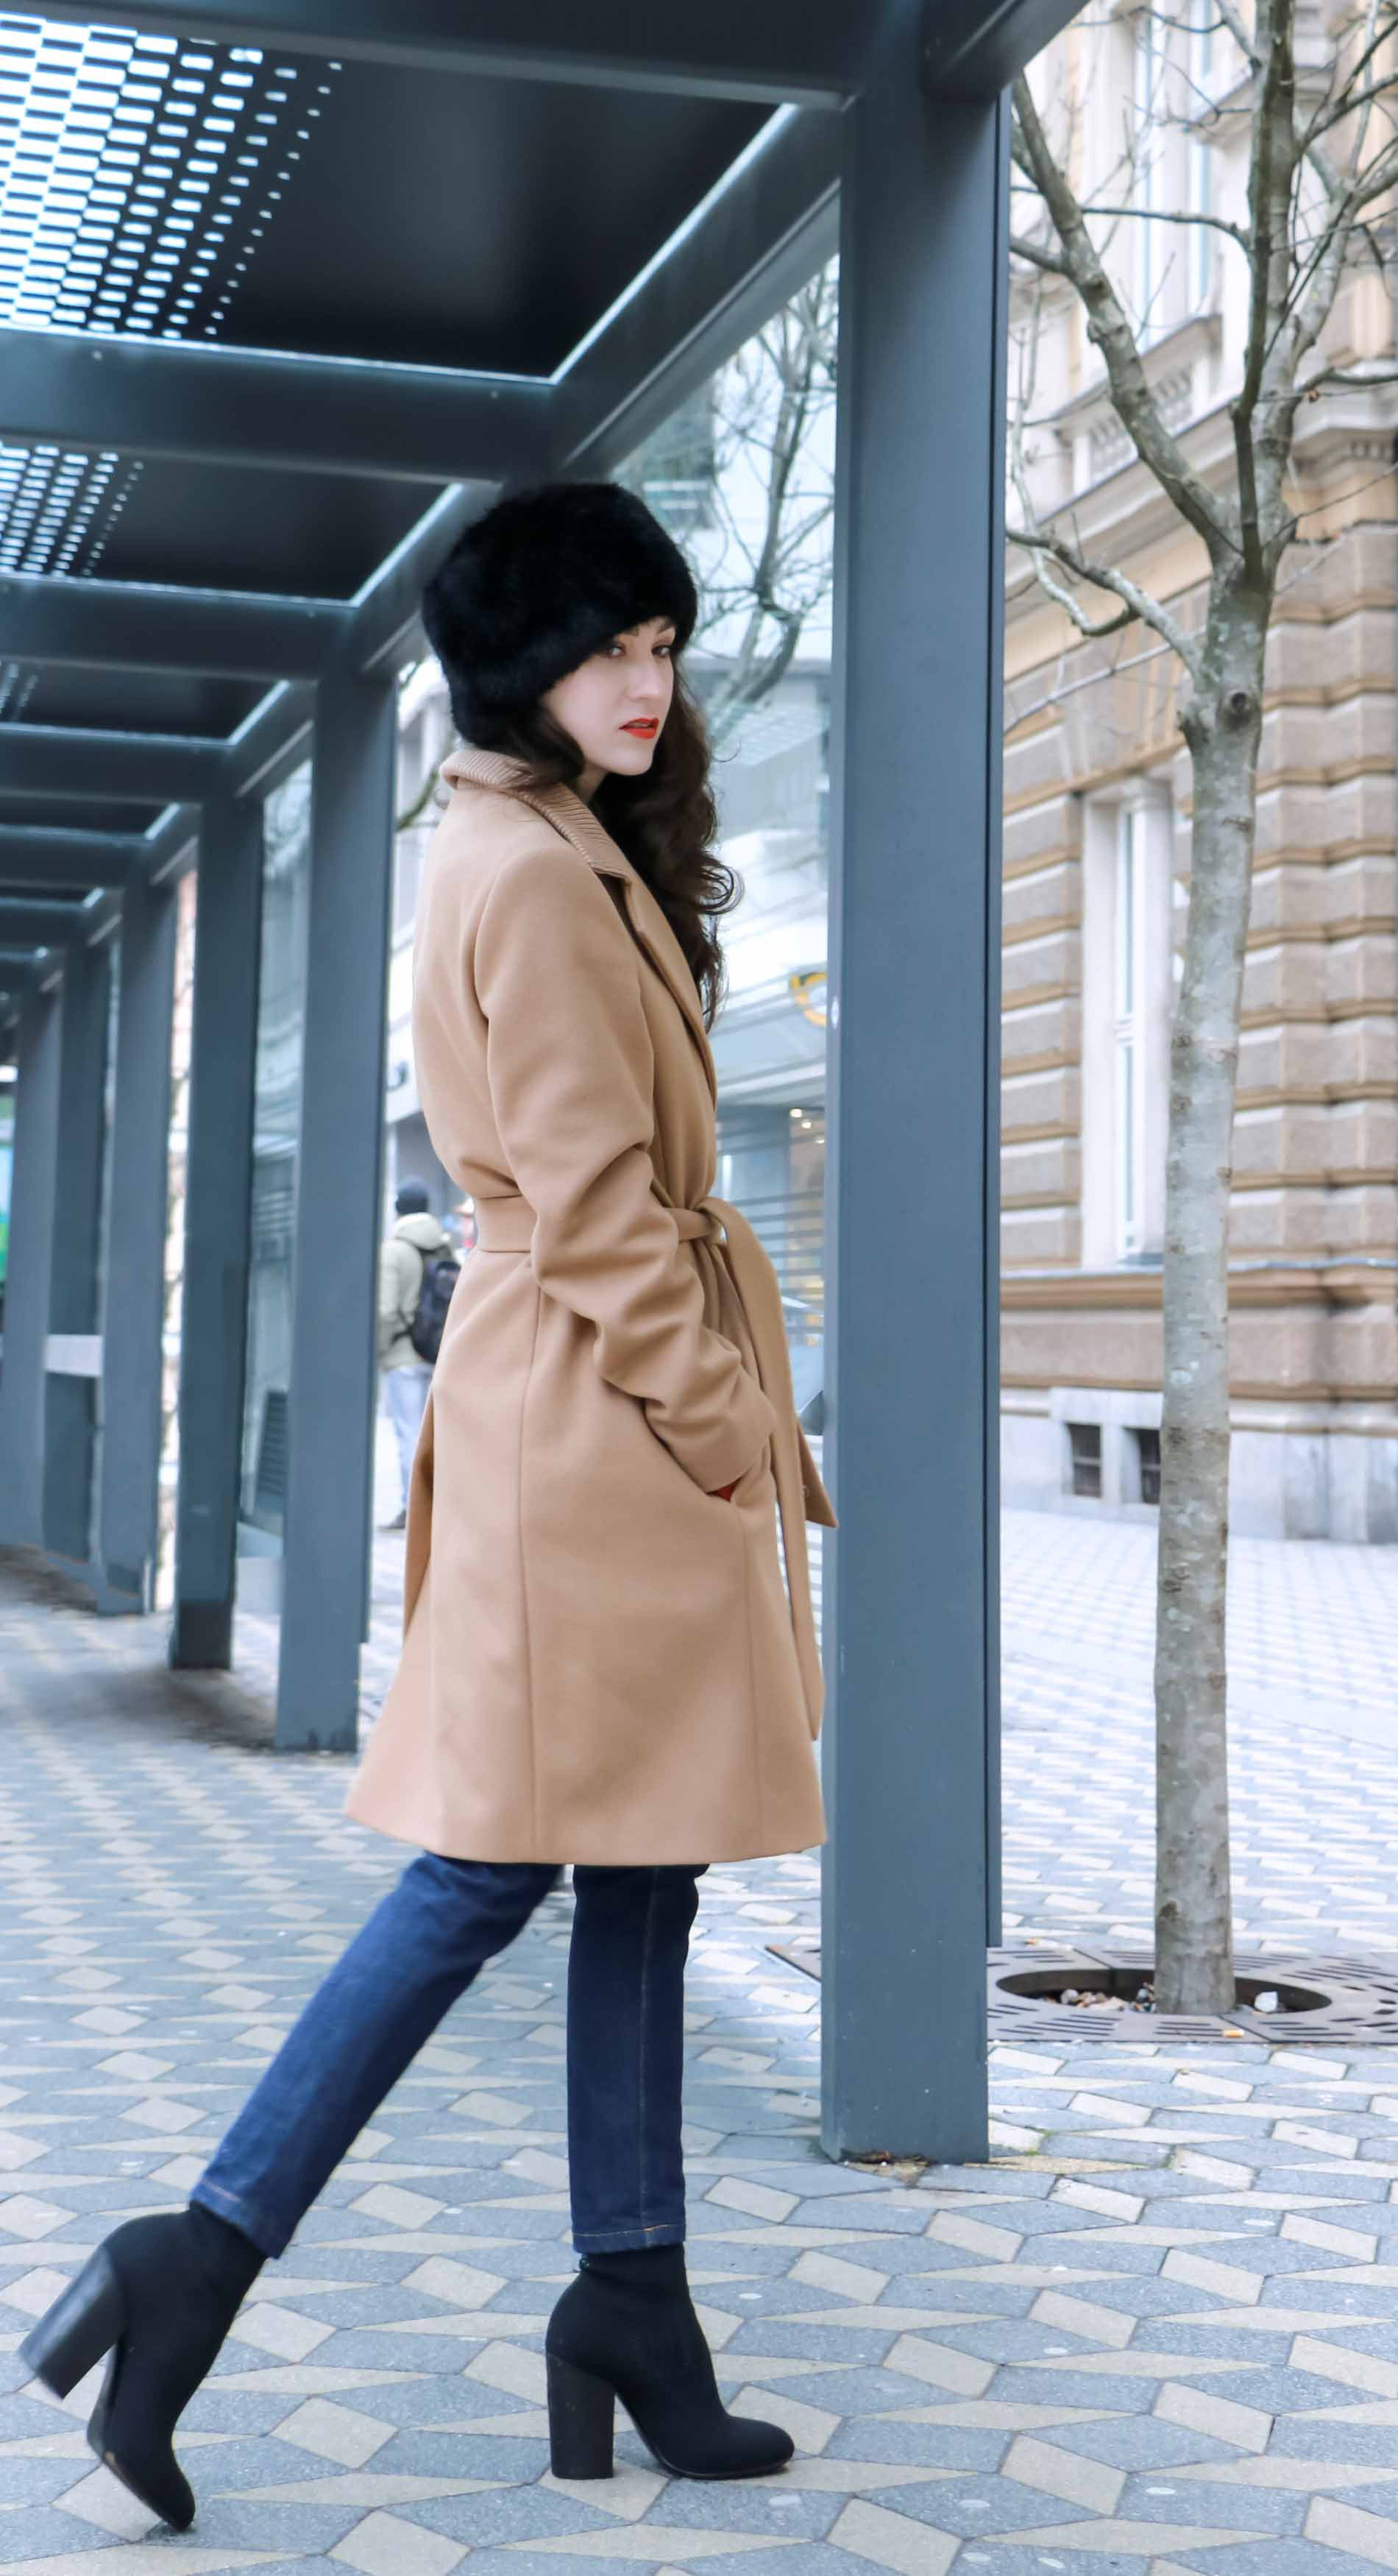 Veronika Lipar of Brunette from Wall Street wearing wrap Escada camel coat, A.P.C. dark tapered denim jeans, black sock boots from Elena Iachi, black fur hat and small black top handle bag while passing by the bus station